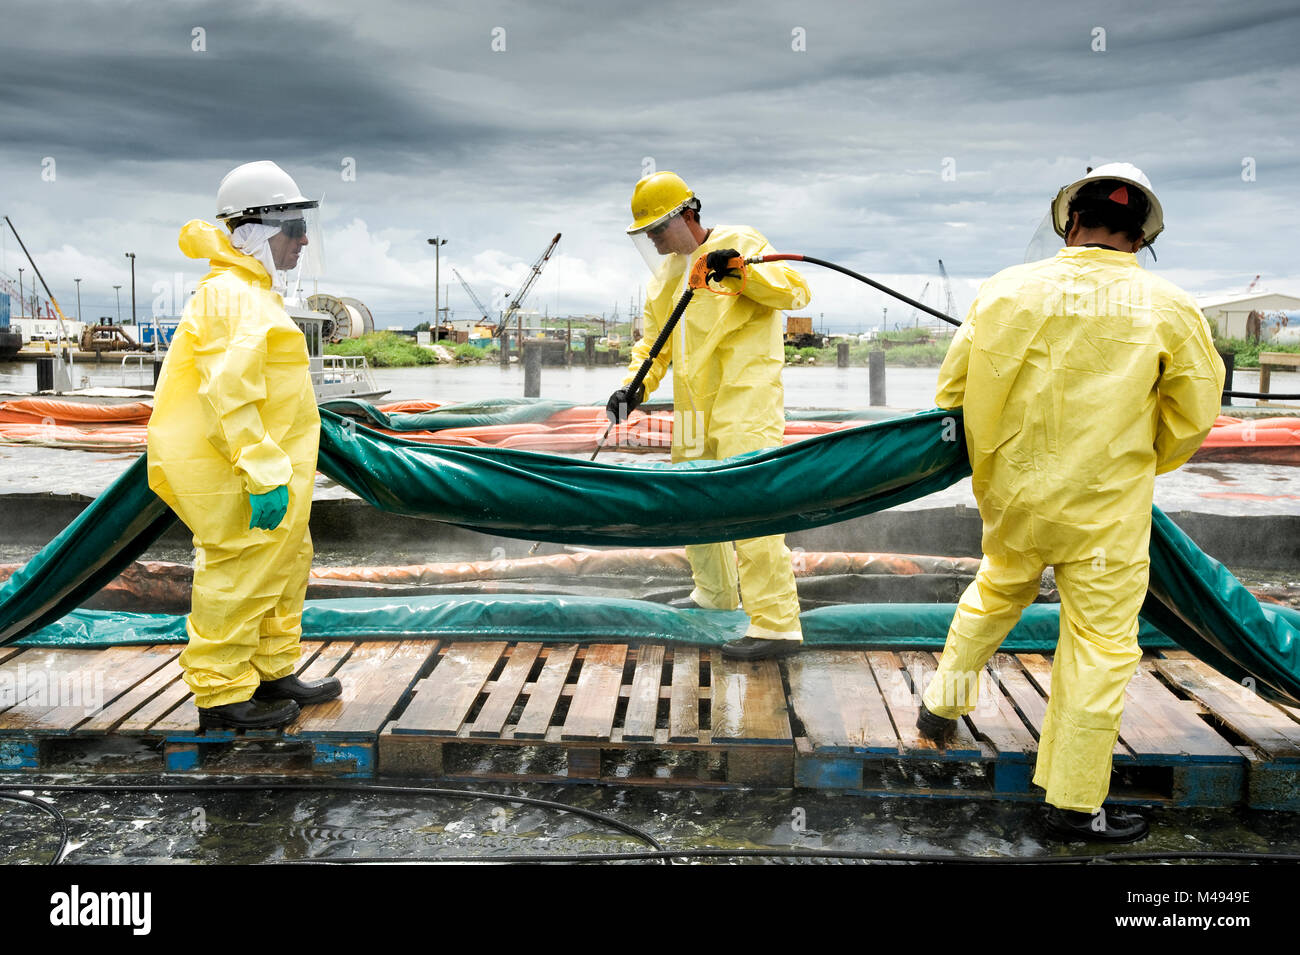 Men cleaning oil containment booms during Deepwater Horizon oil spill, Louisiana, Gulf of Mexico, USA, August 2010 - Stock Image